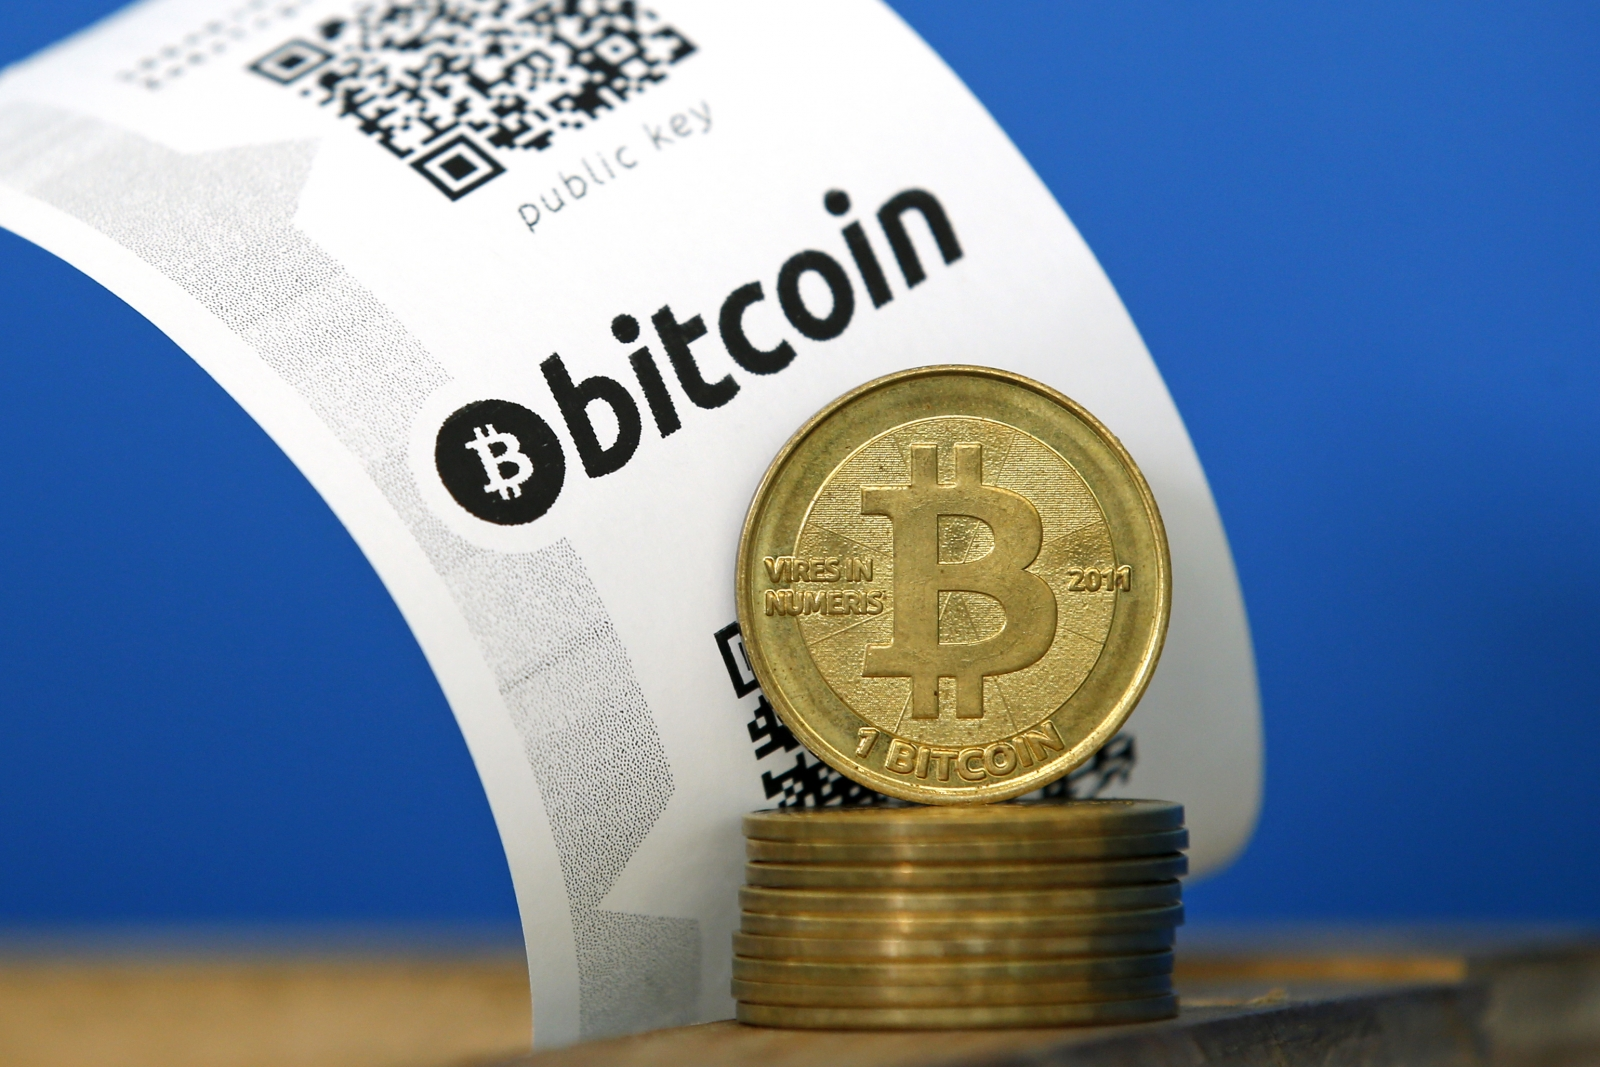 Bitcoin (virtual currency cryptocurrency) paper wallet with QR codes and coins